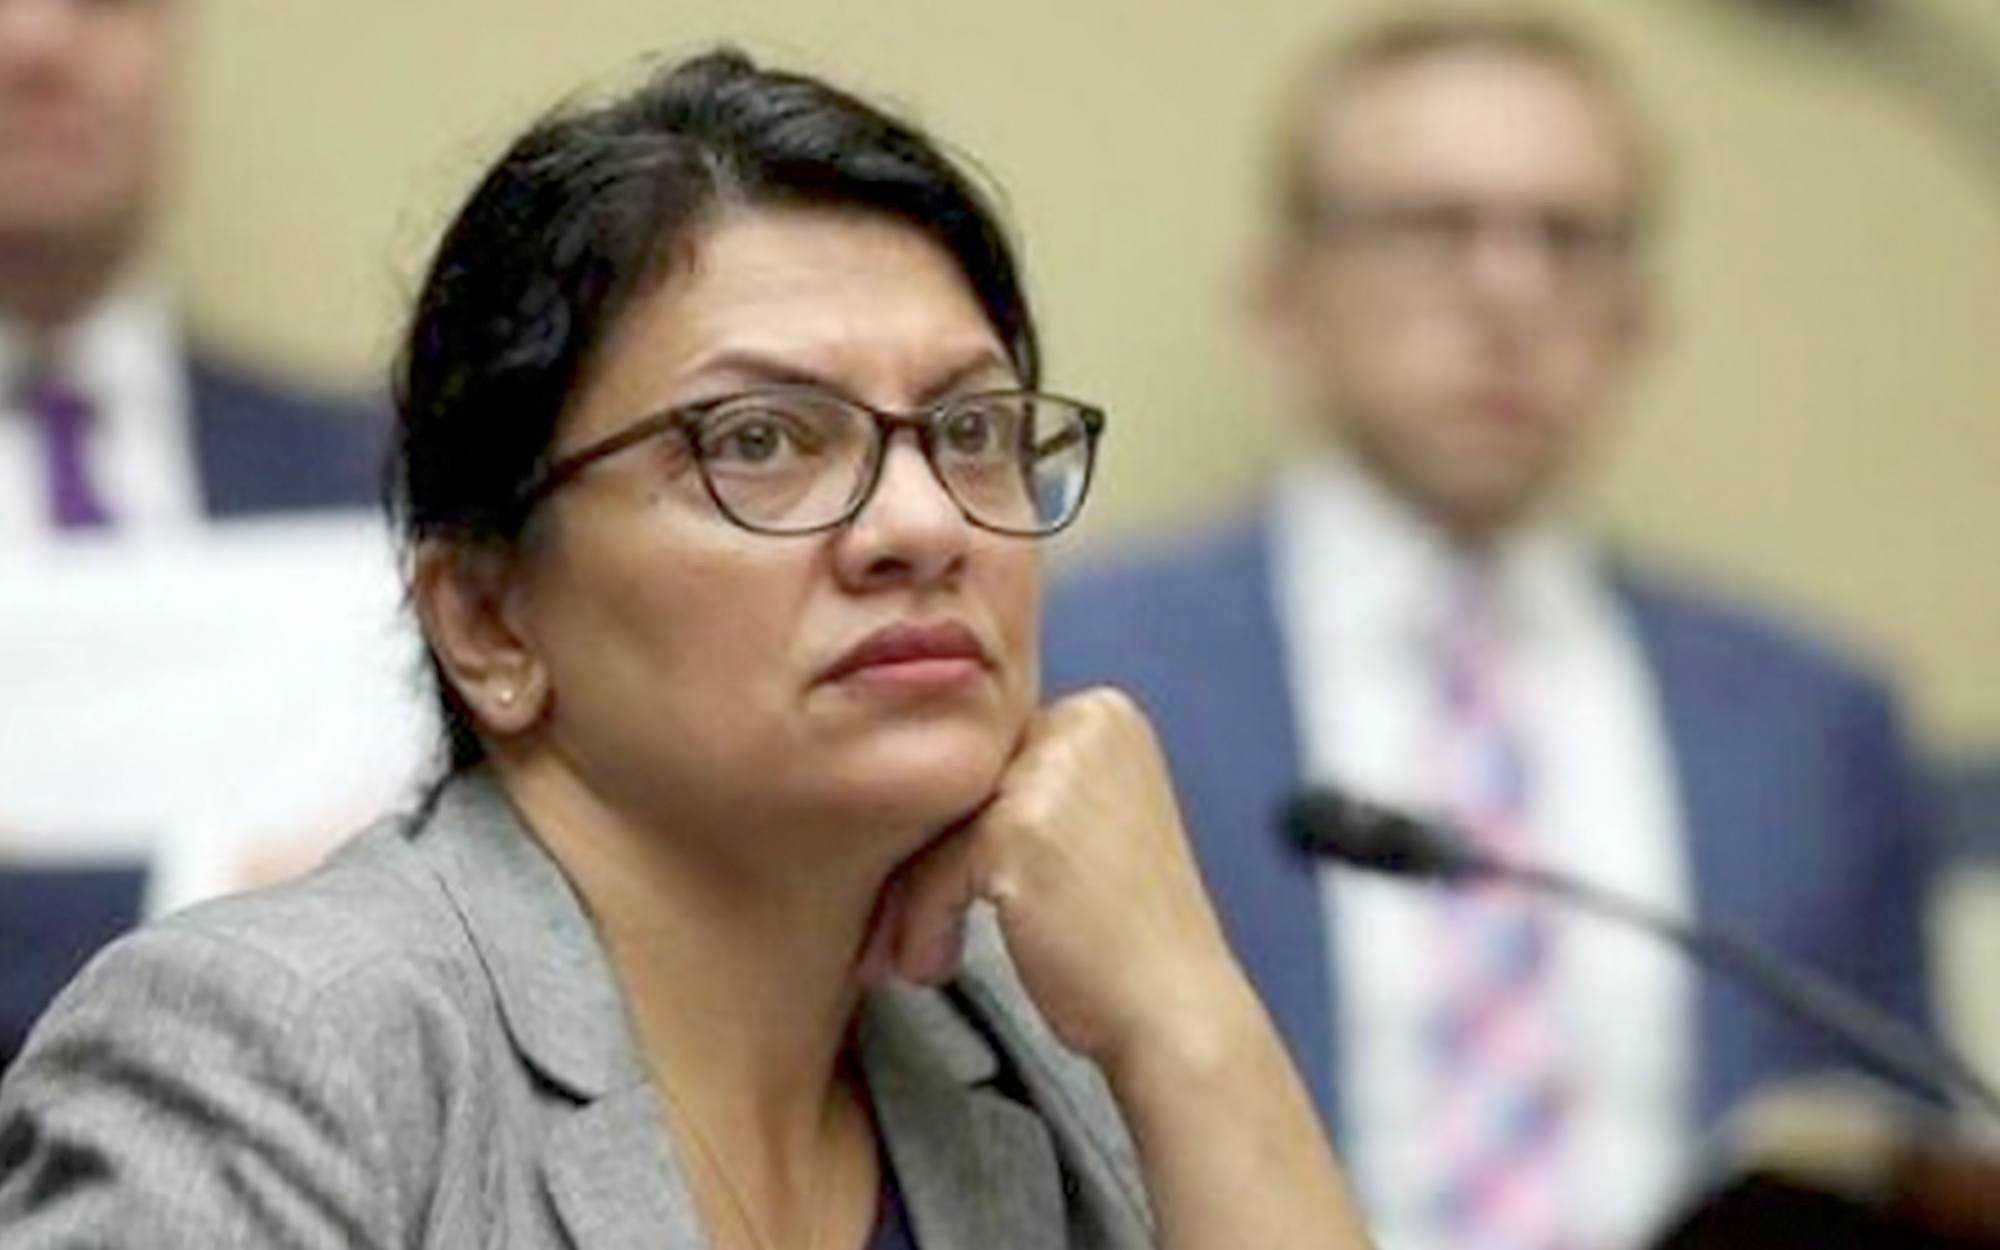 Former NY lawmaker kicked out of Rashida Tlaib's event for asking question about anti-semitism